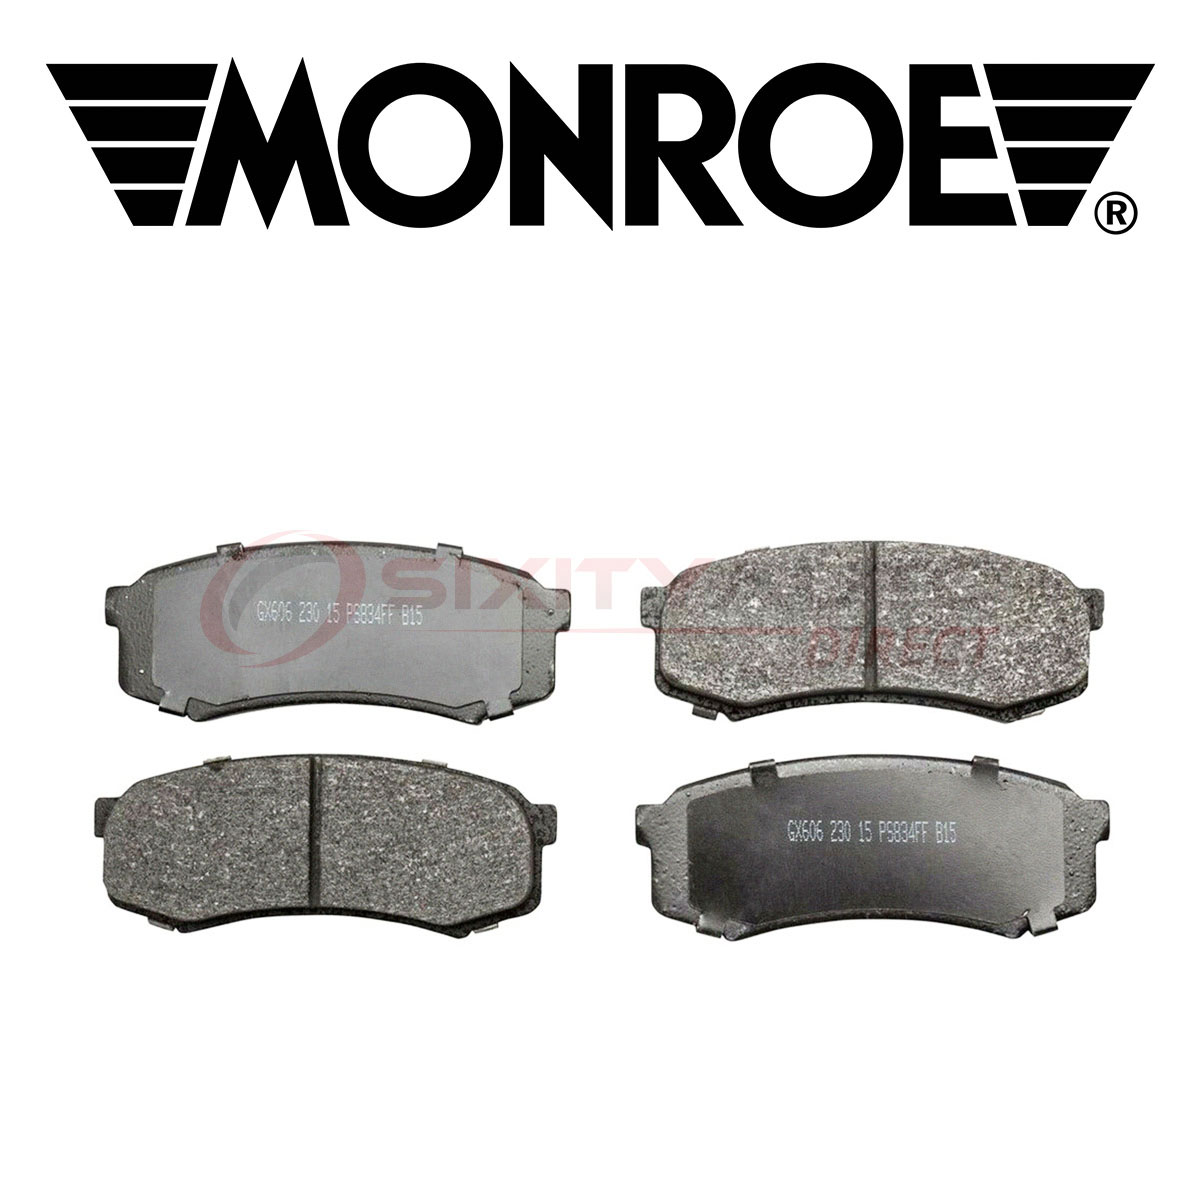 1990 1991 1992 1993 For Toyota Land Cruiser Front Ceramic Brake Pads